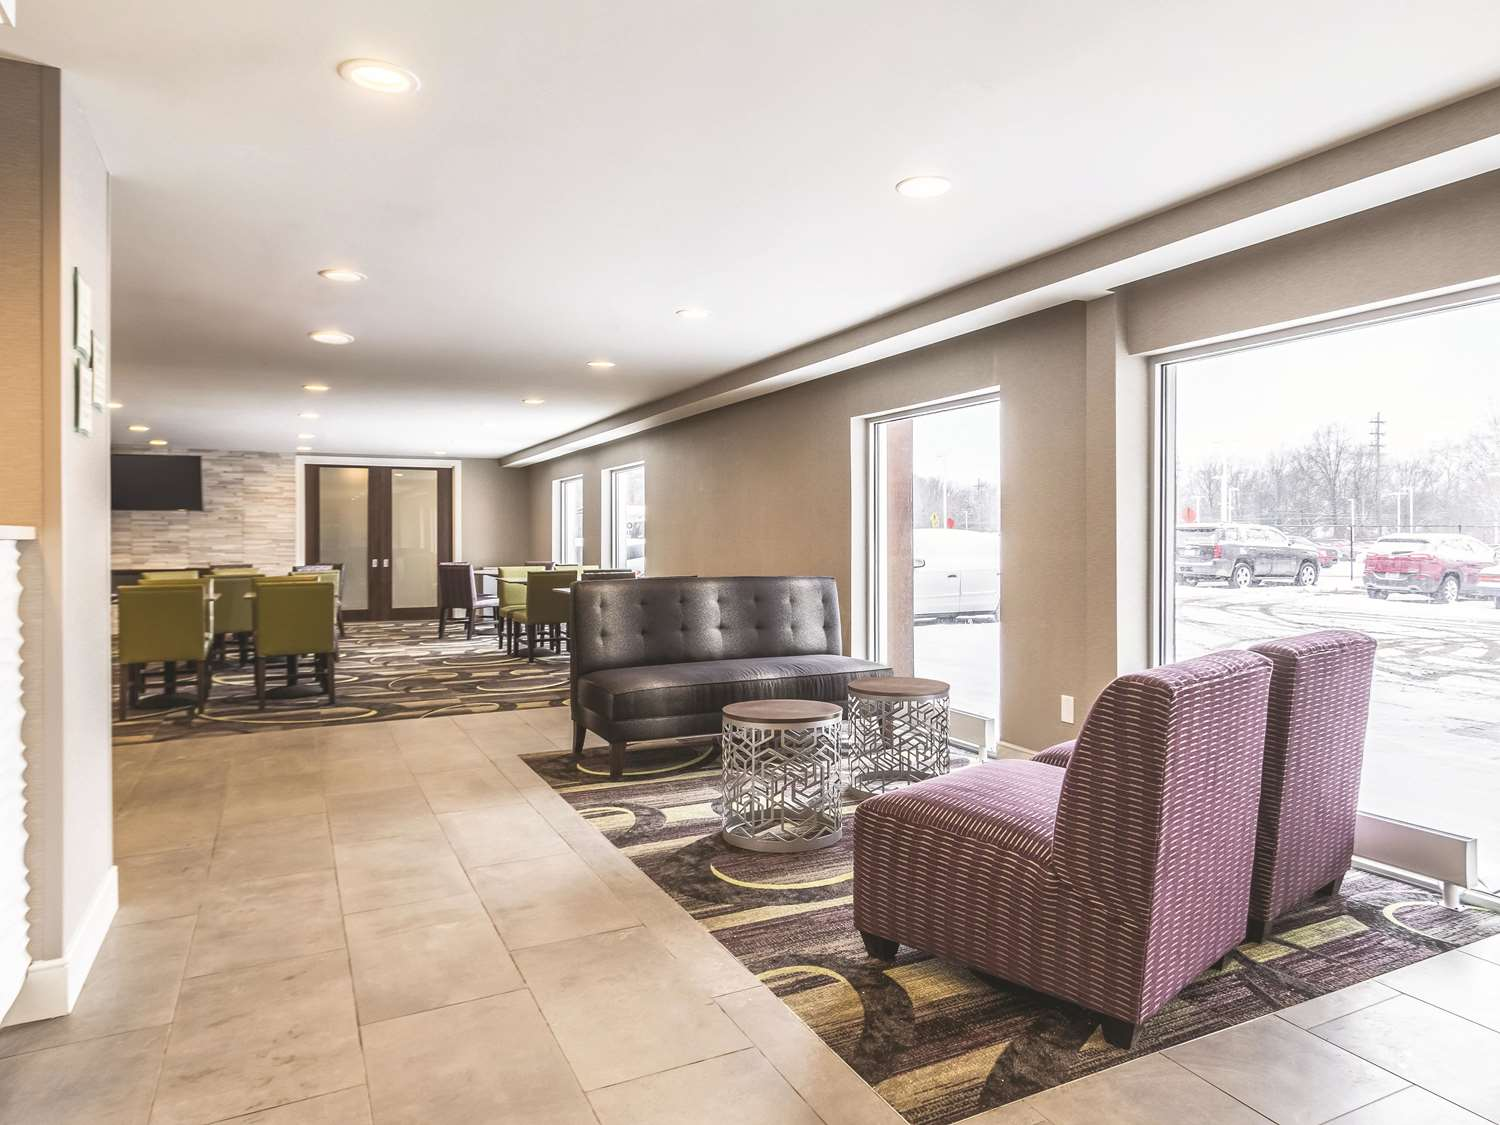 La Quinta Inn Cle Airport Cleveland Oh See Discounts